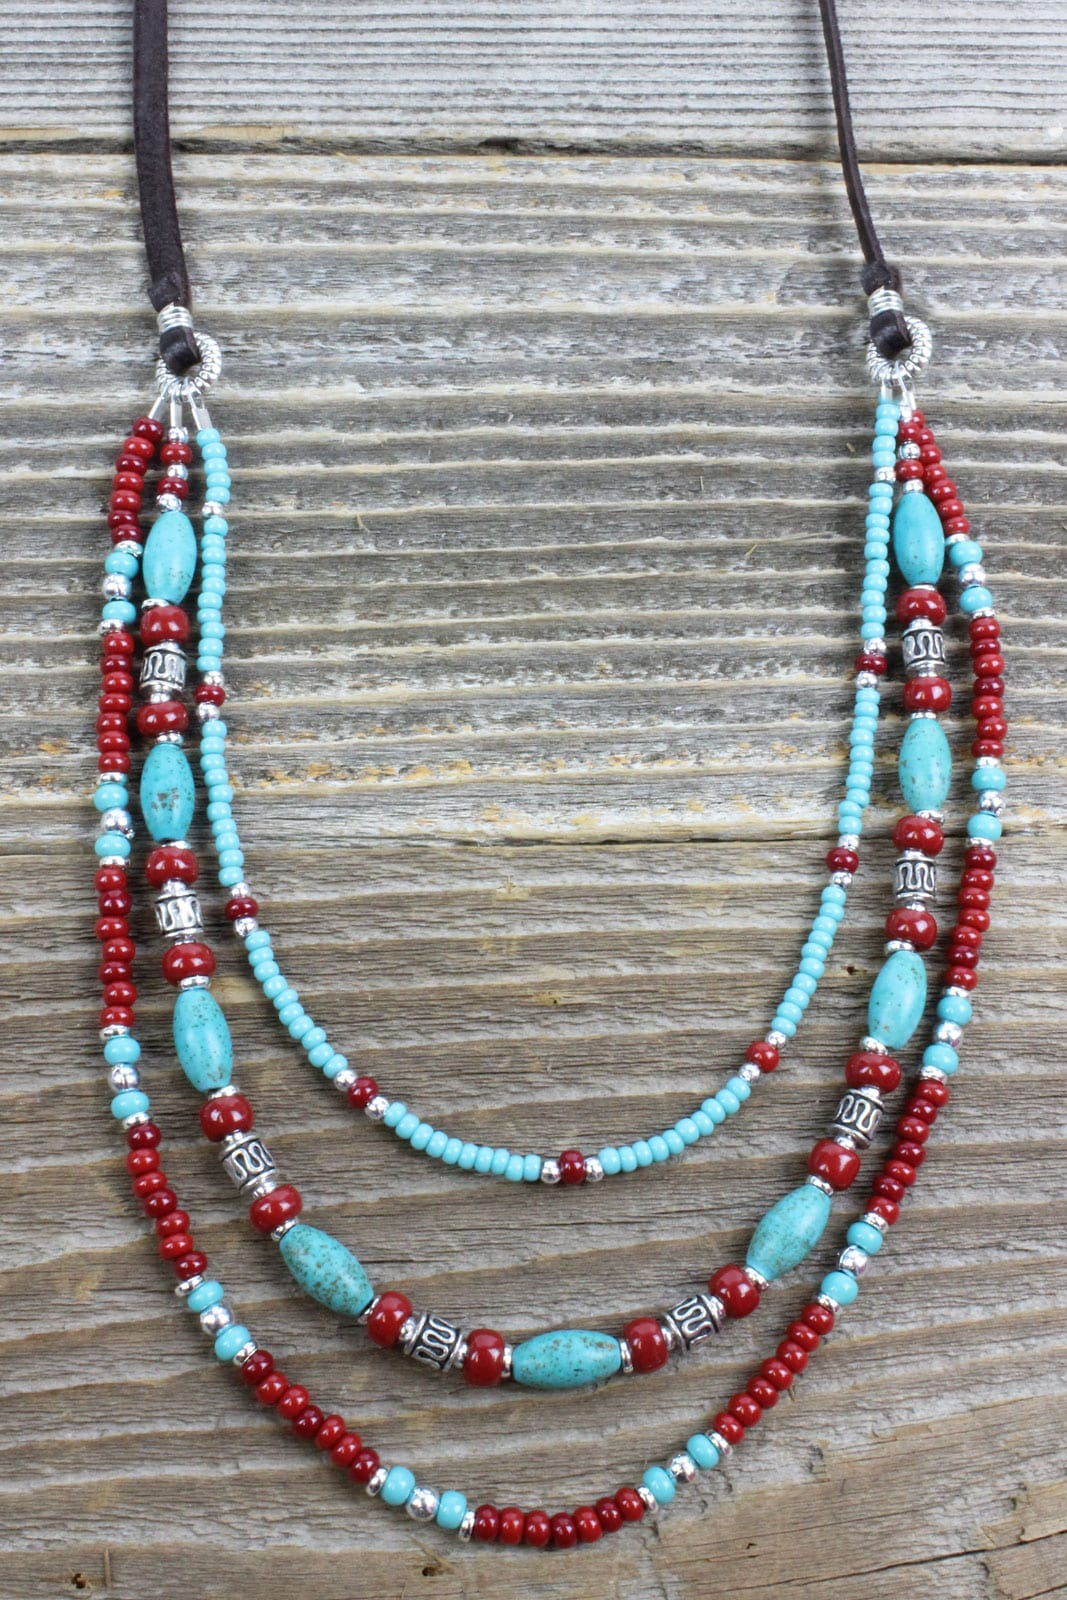 Handcrafted Necklaces